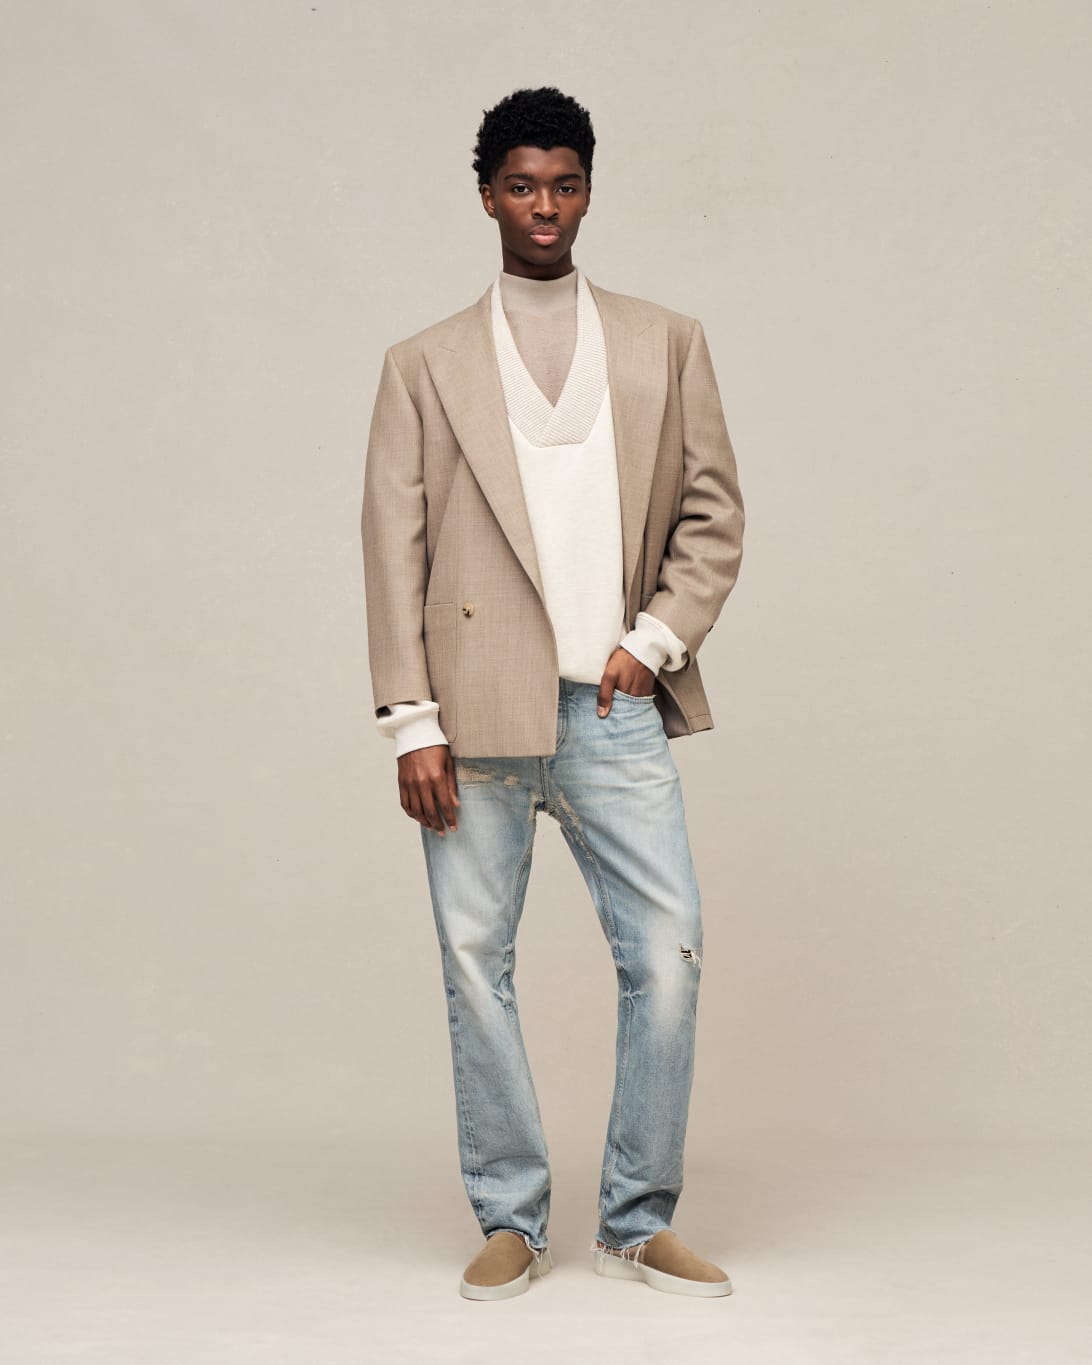 Seventh Collection | Fall/Winter Lookbook Look 06